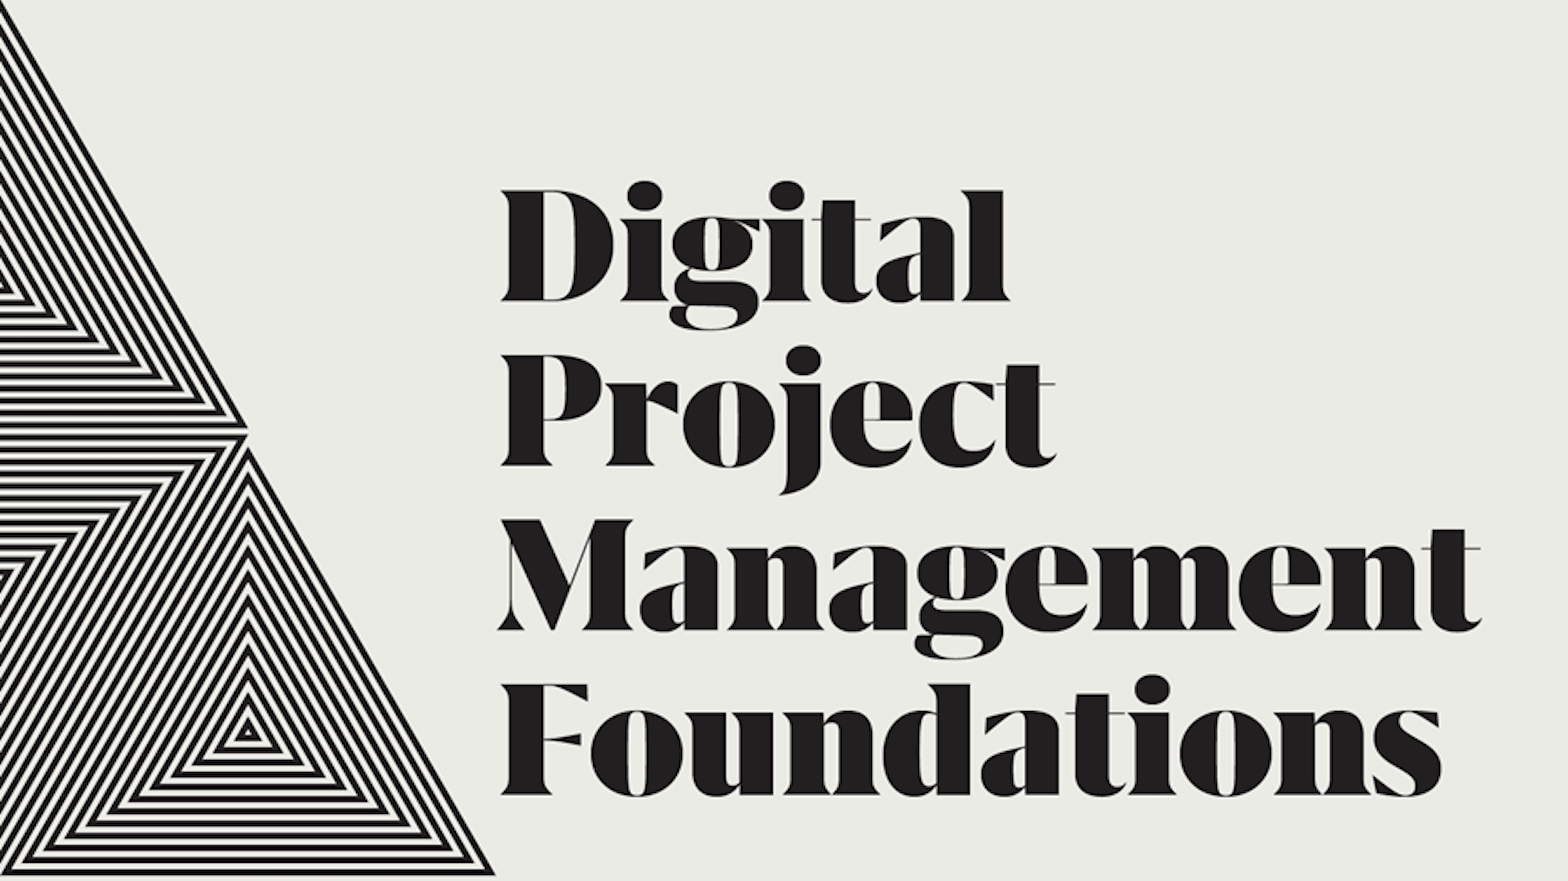 Digital Project Management Foundations